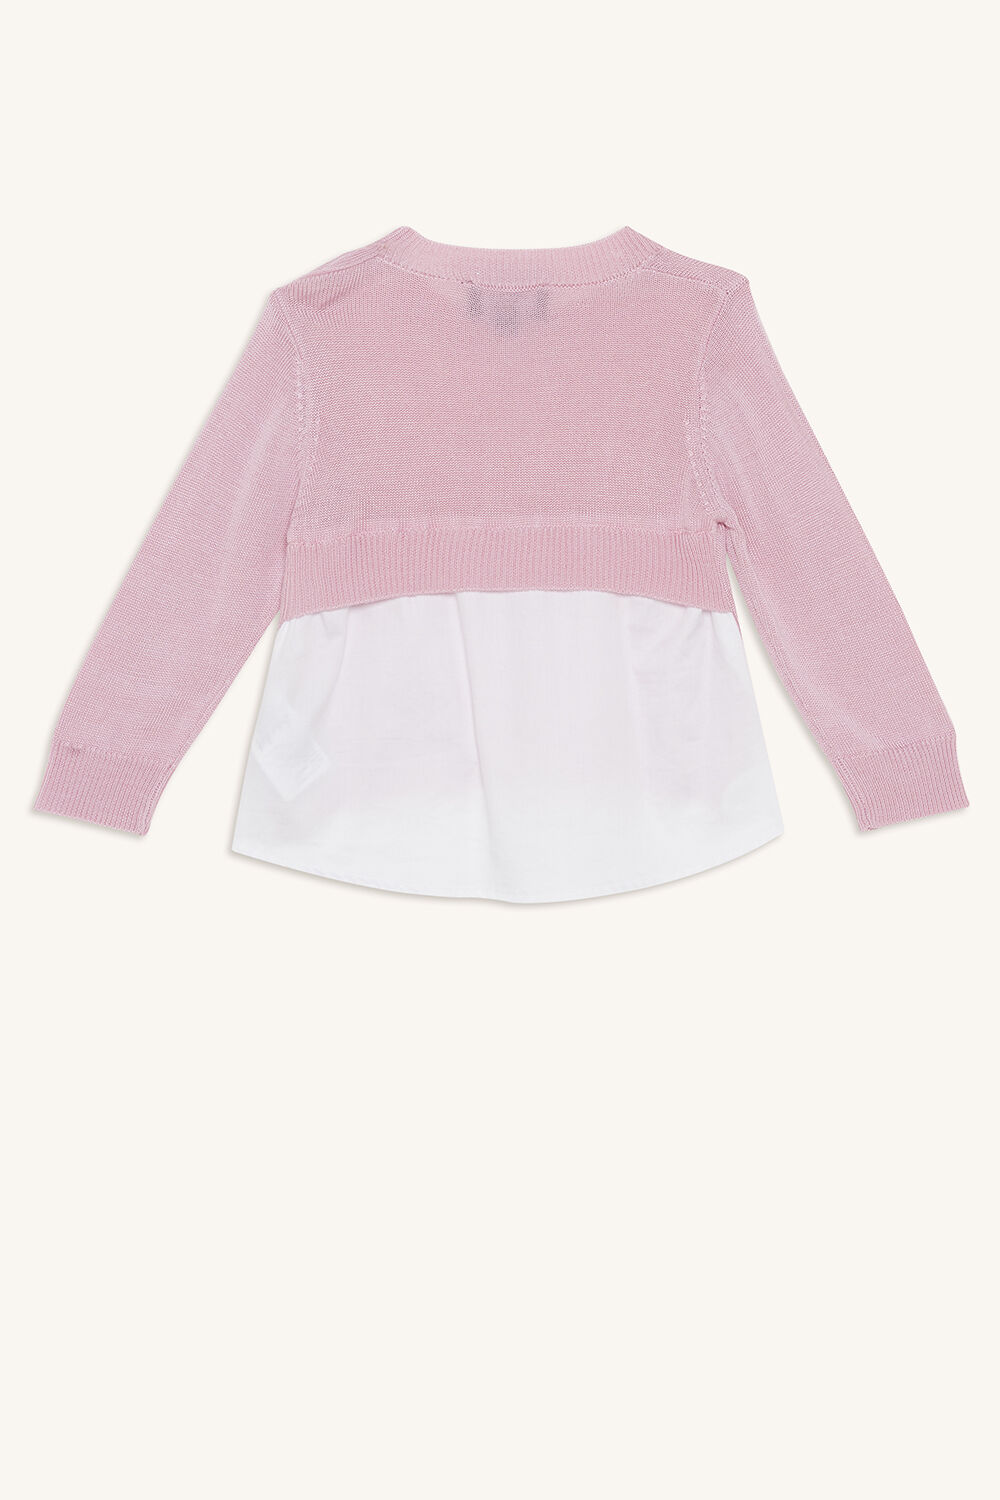 ELORA CARDIGAN in colour LILAC CHIFFON